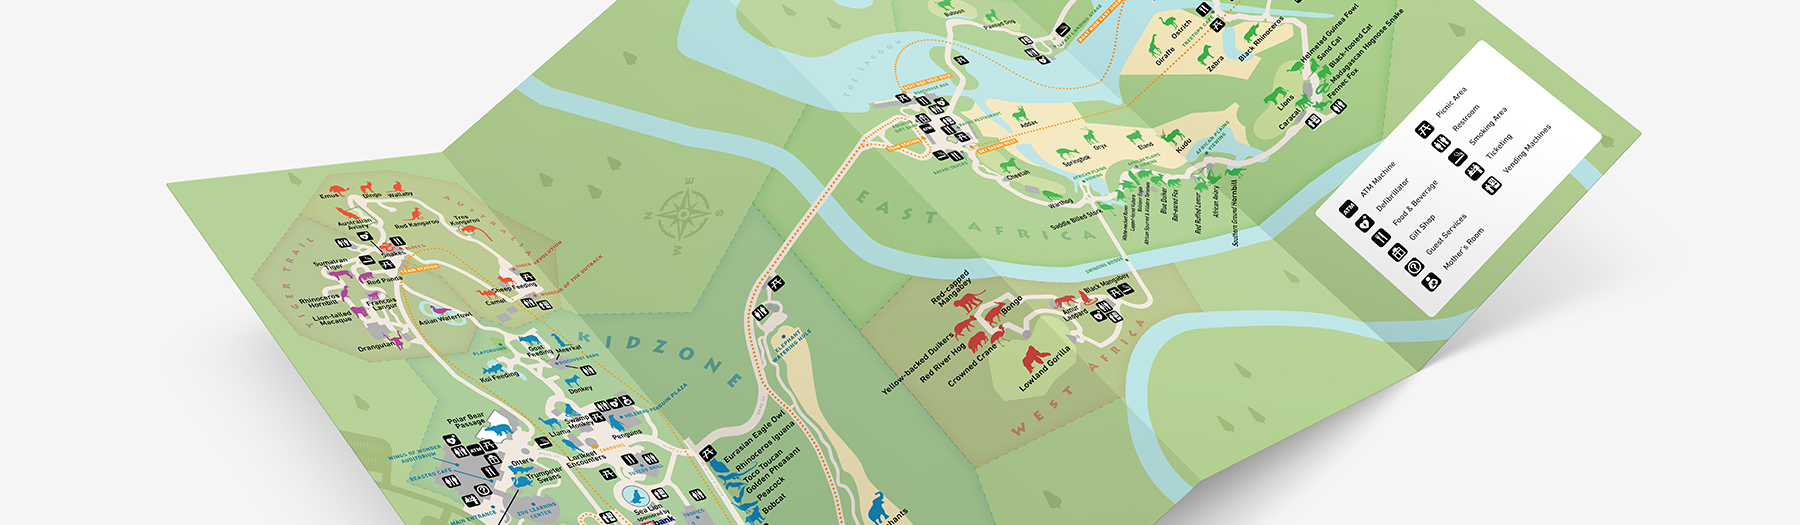 Web Design And Print Material For The New Kansas City Zoo Map